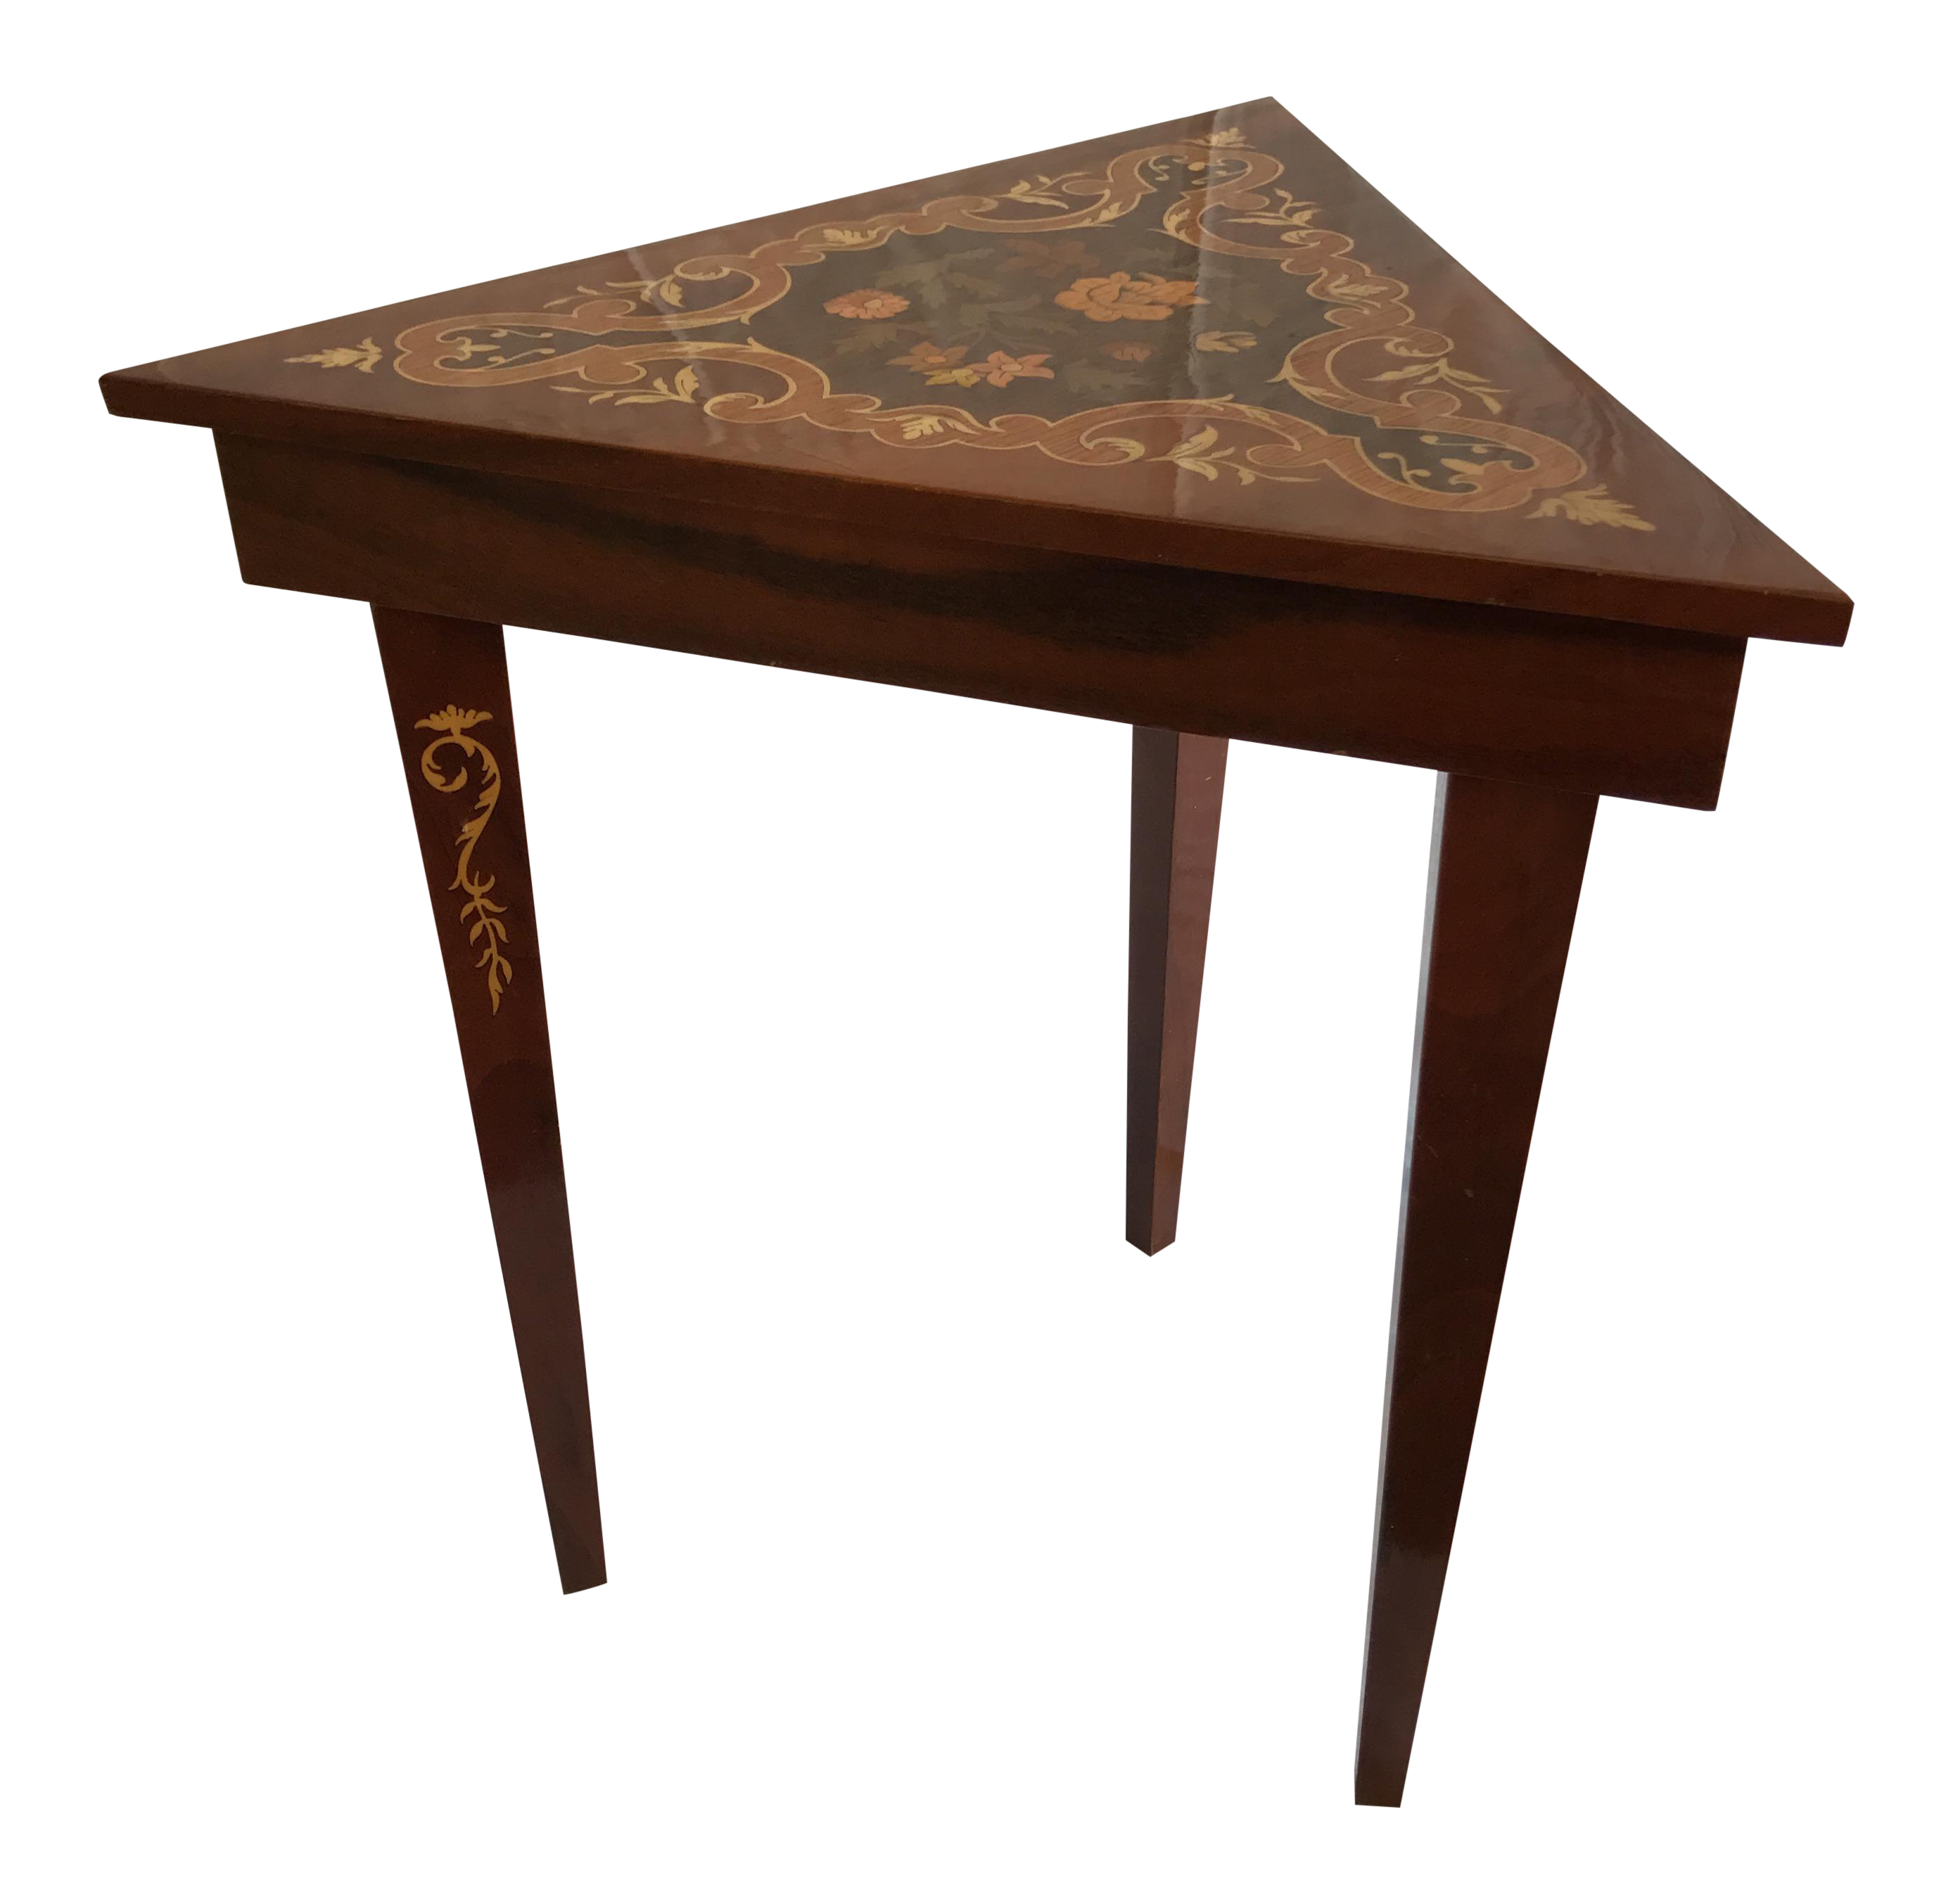 reuge italian music box side table chairish kade accent patio dining sets ikea wall cabinets bedroom bird little lamp tablecloth for inch round industrial hairpin legs west elm